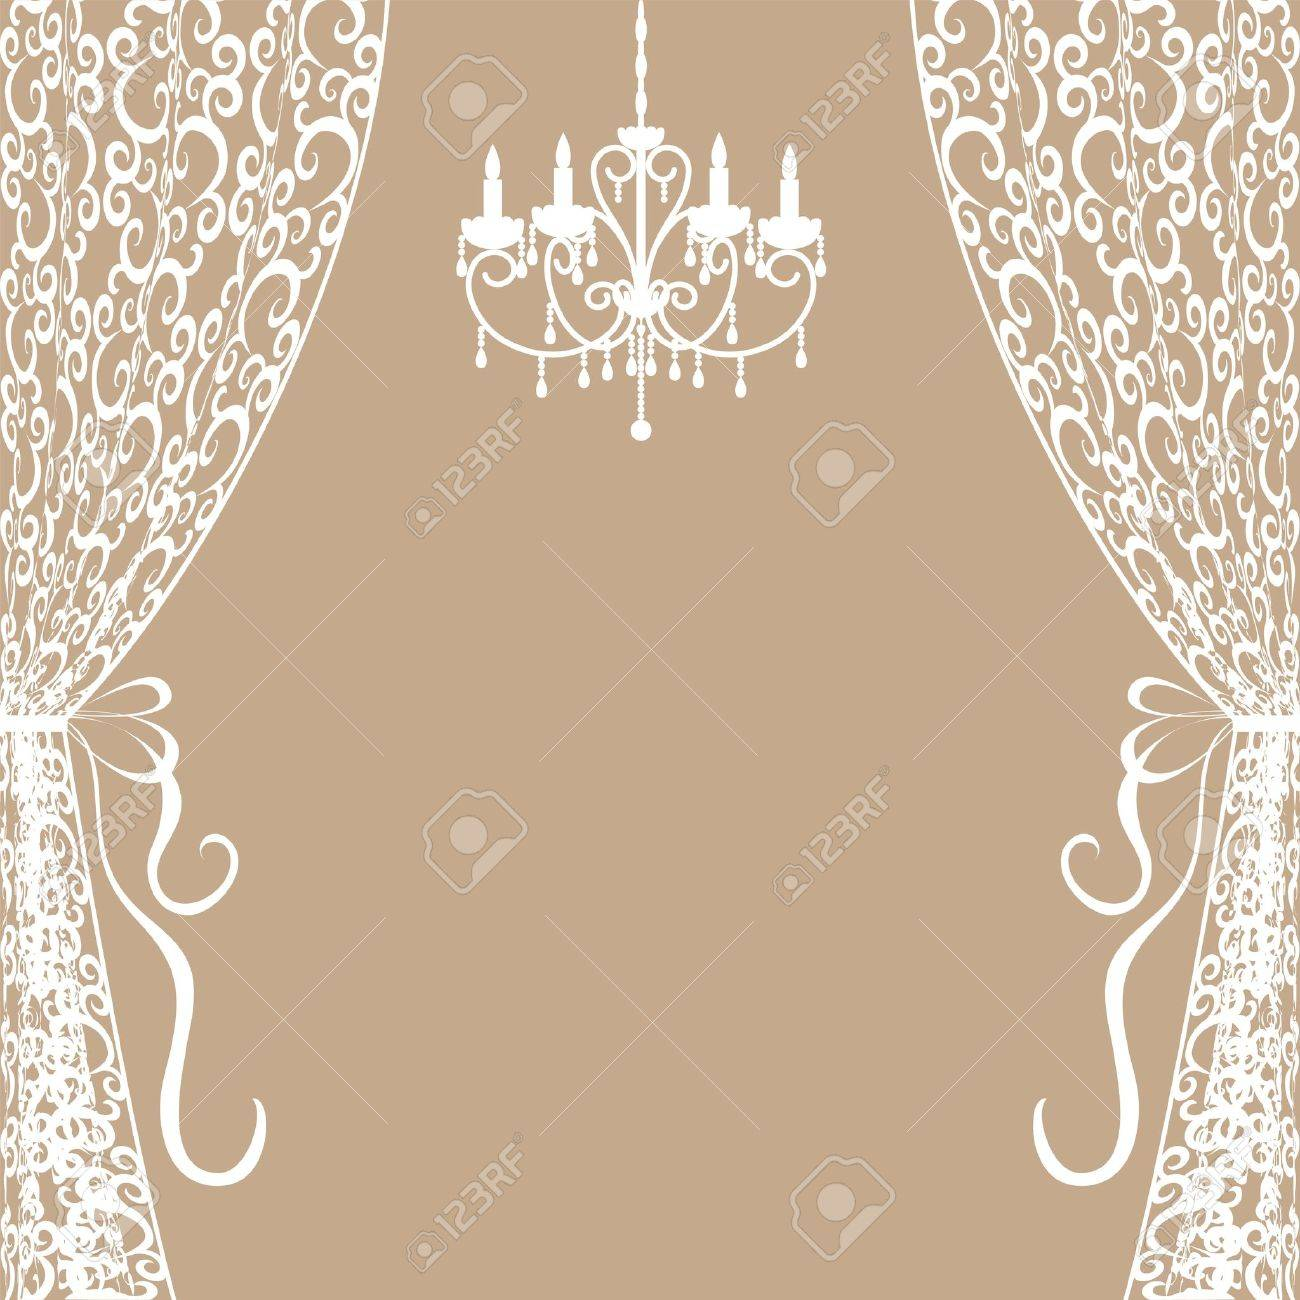 Chandelier Curtains: Vector - Vintage card with chandelier and curtains,Lighting